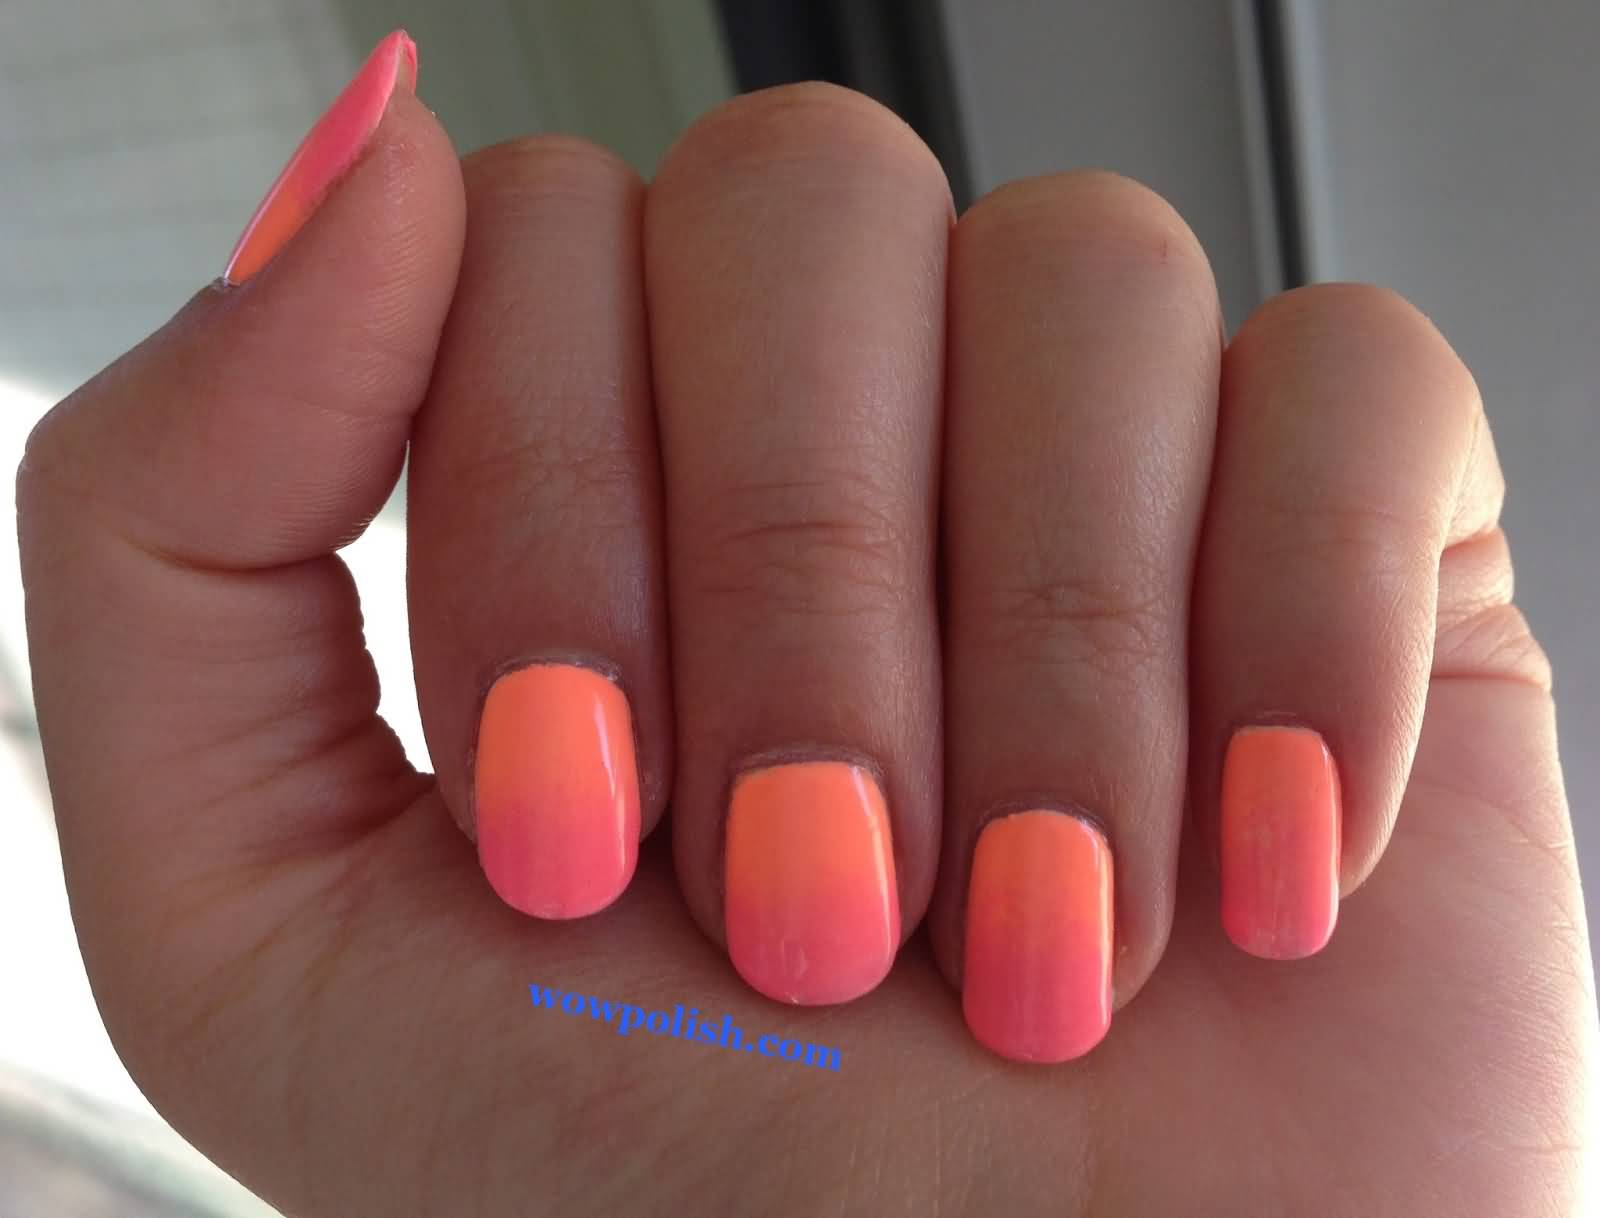 Nail art designs with peach a spring trend that you should try nail art designs with peach classy gradient nail art designs prinsesfo Images